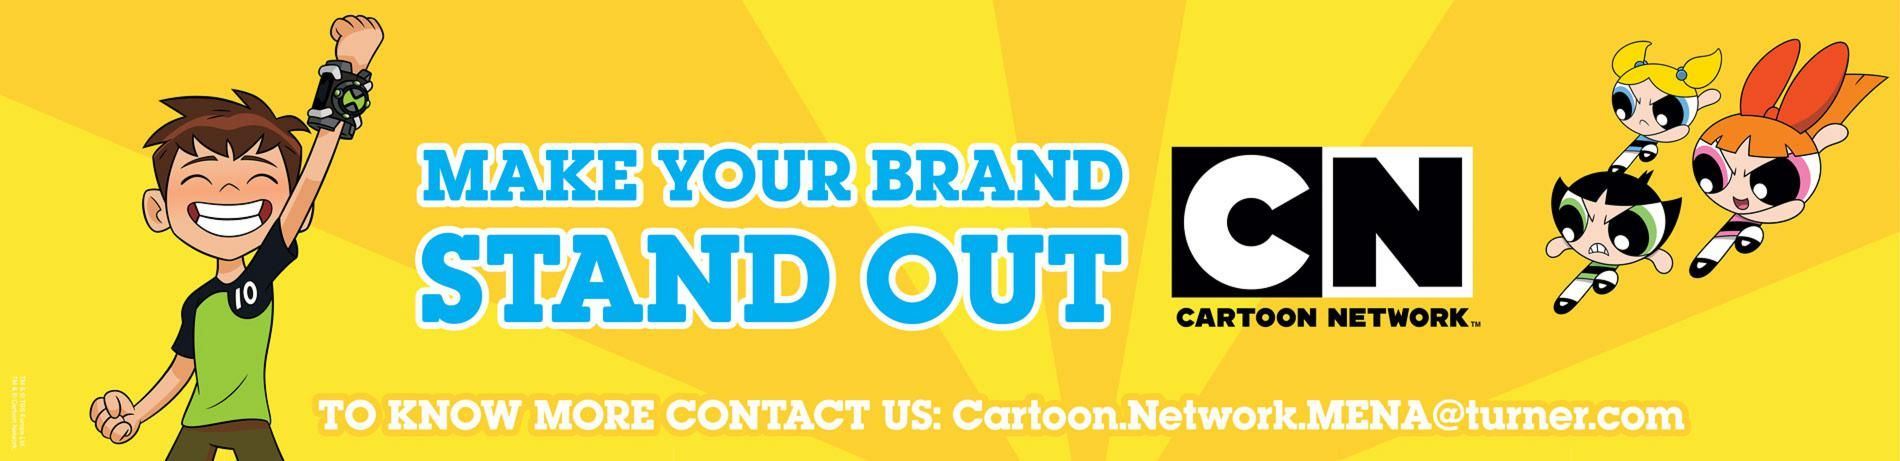 Cartoon Network Brand Licensing for FMCG